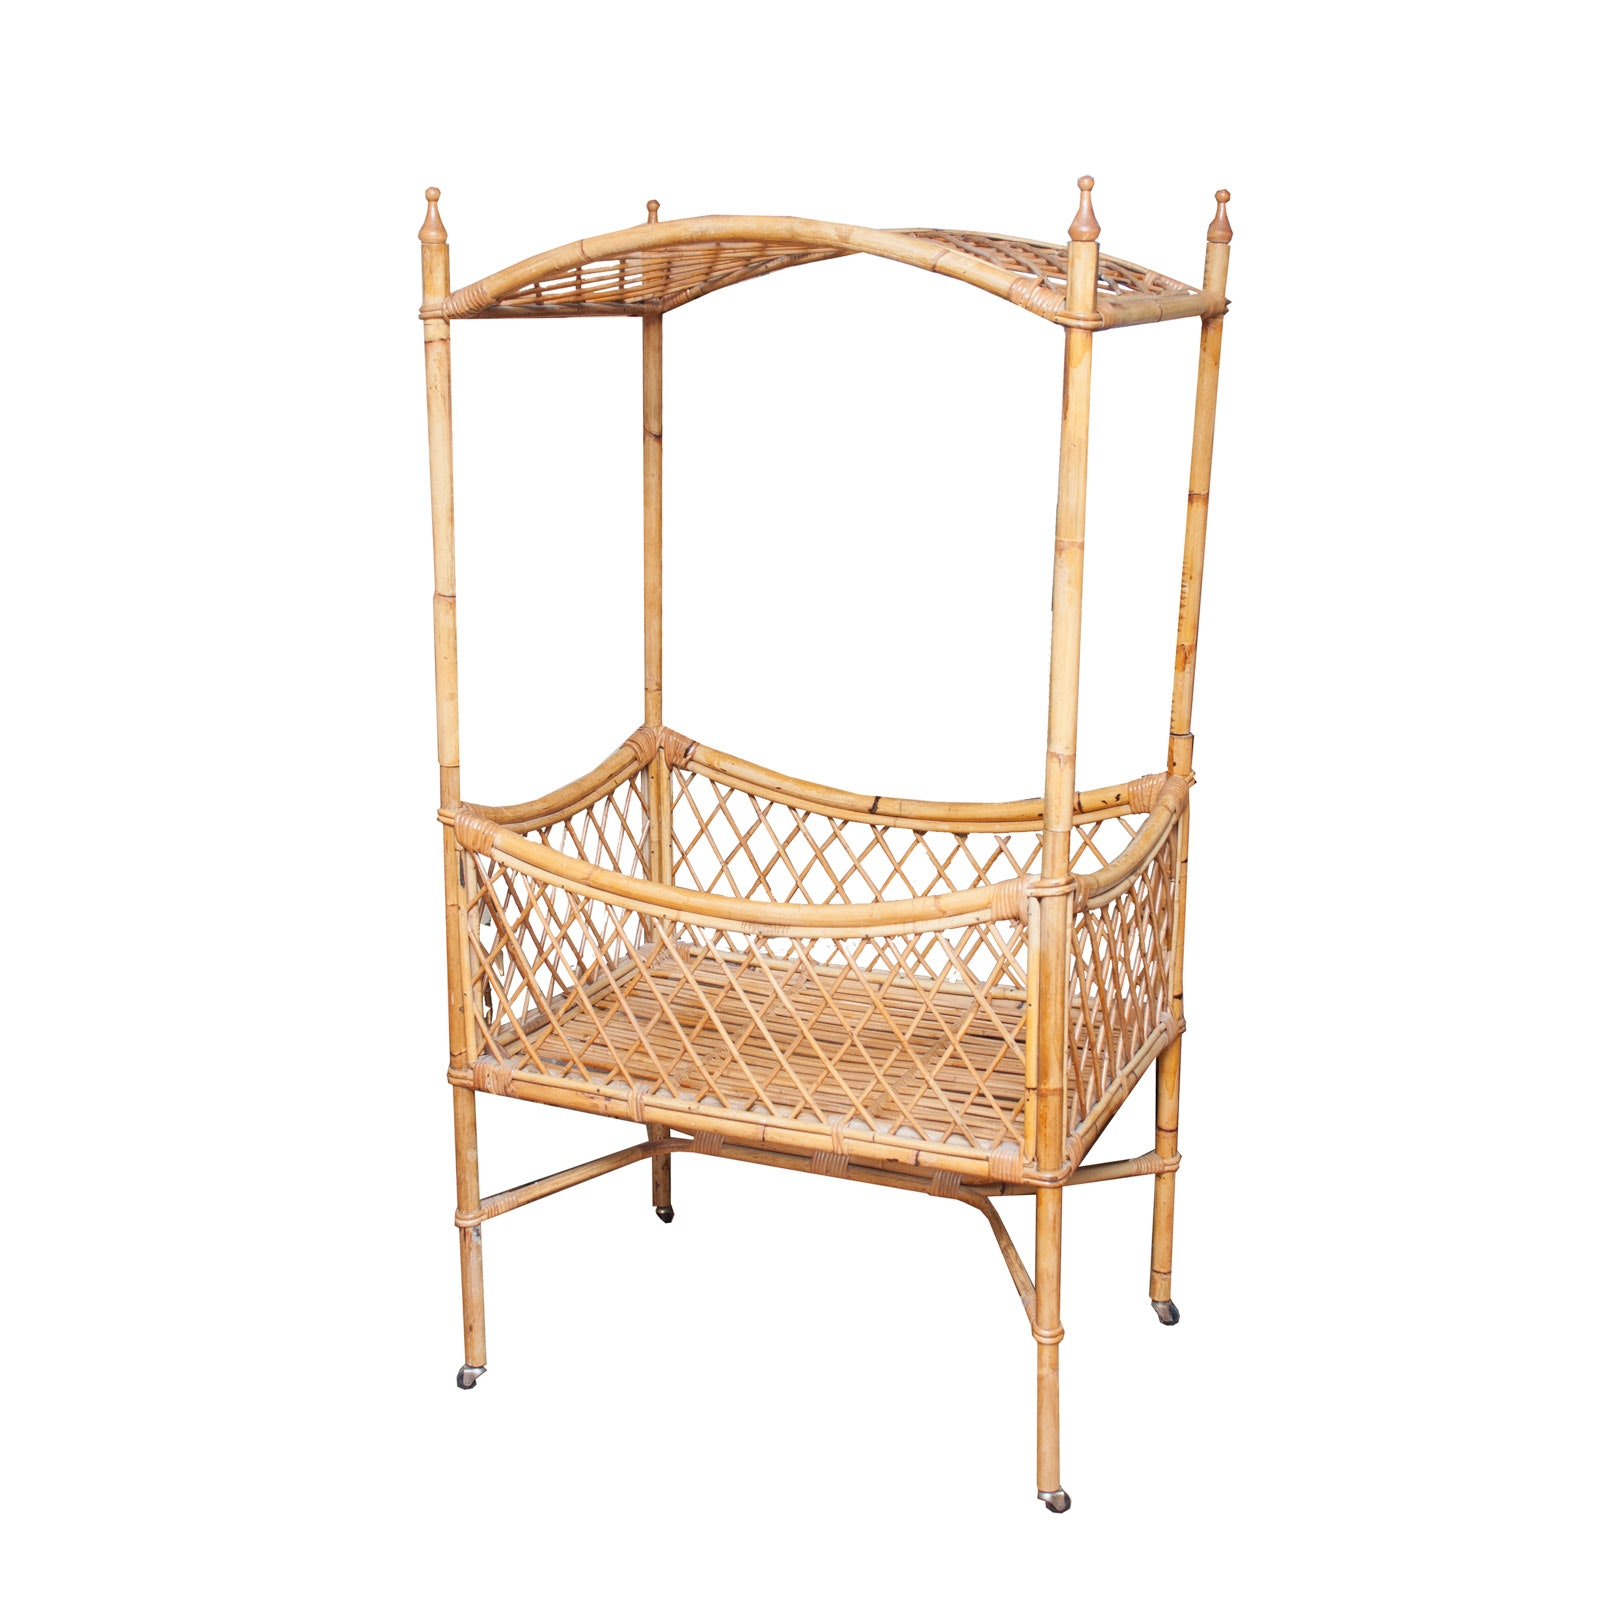 Vintage Bamboo and Rattan Doll Canopy Bed